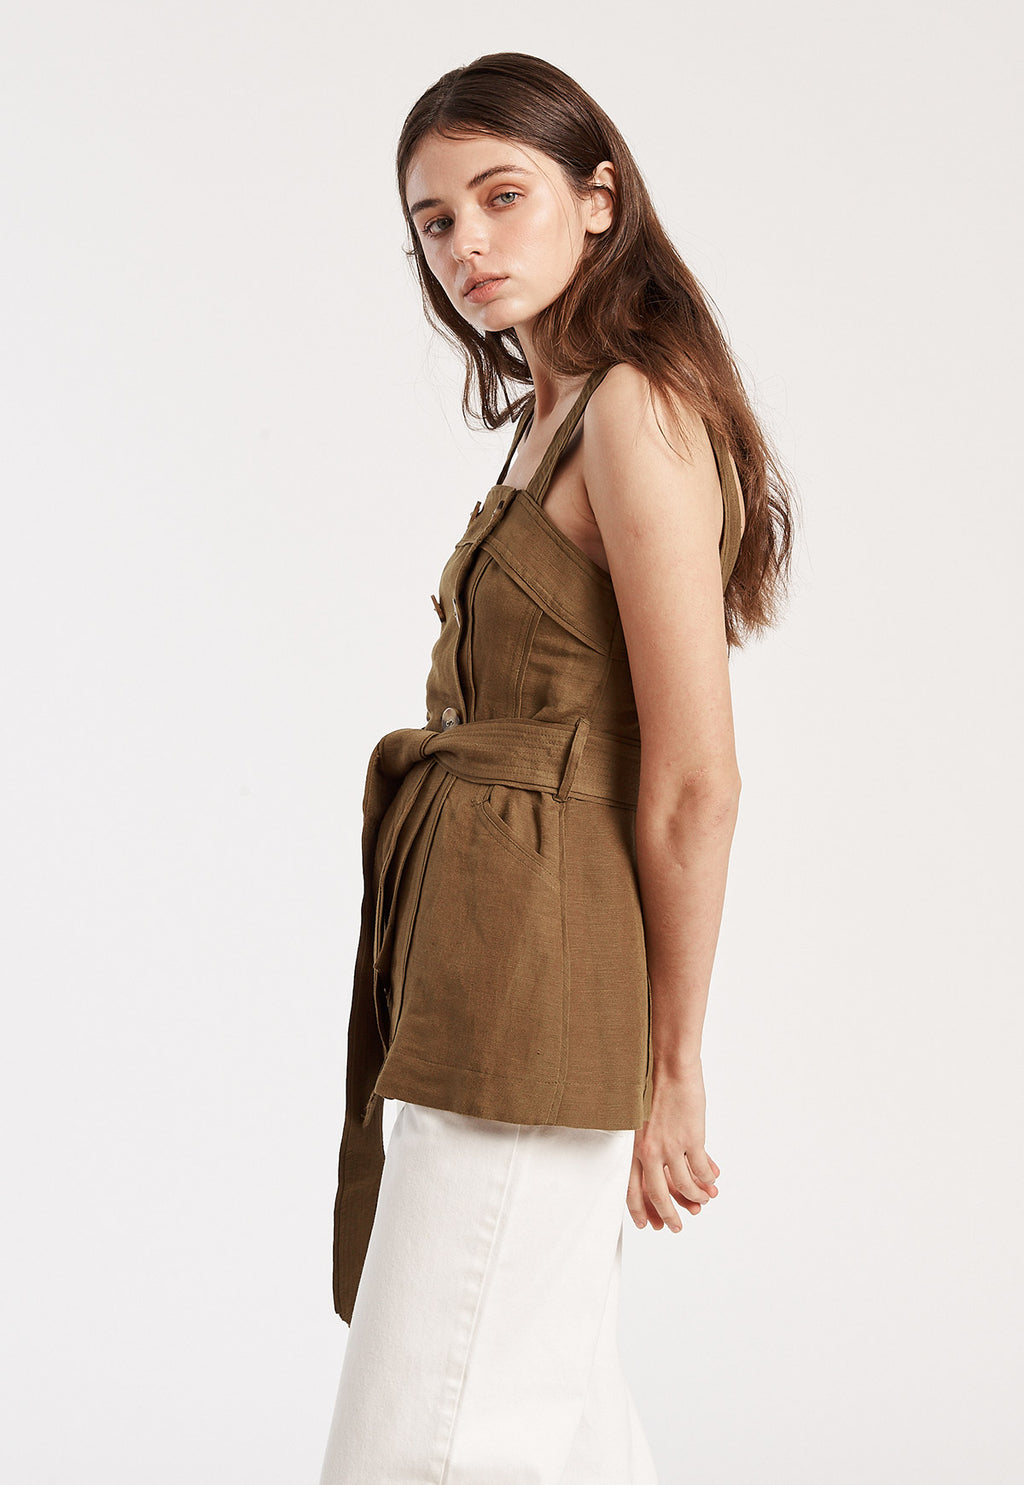 Button Strap Top in Taupe, top, c/meo, - nois